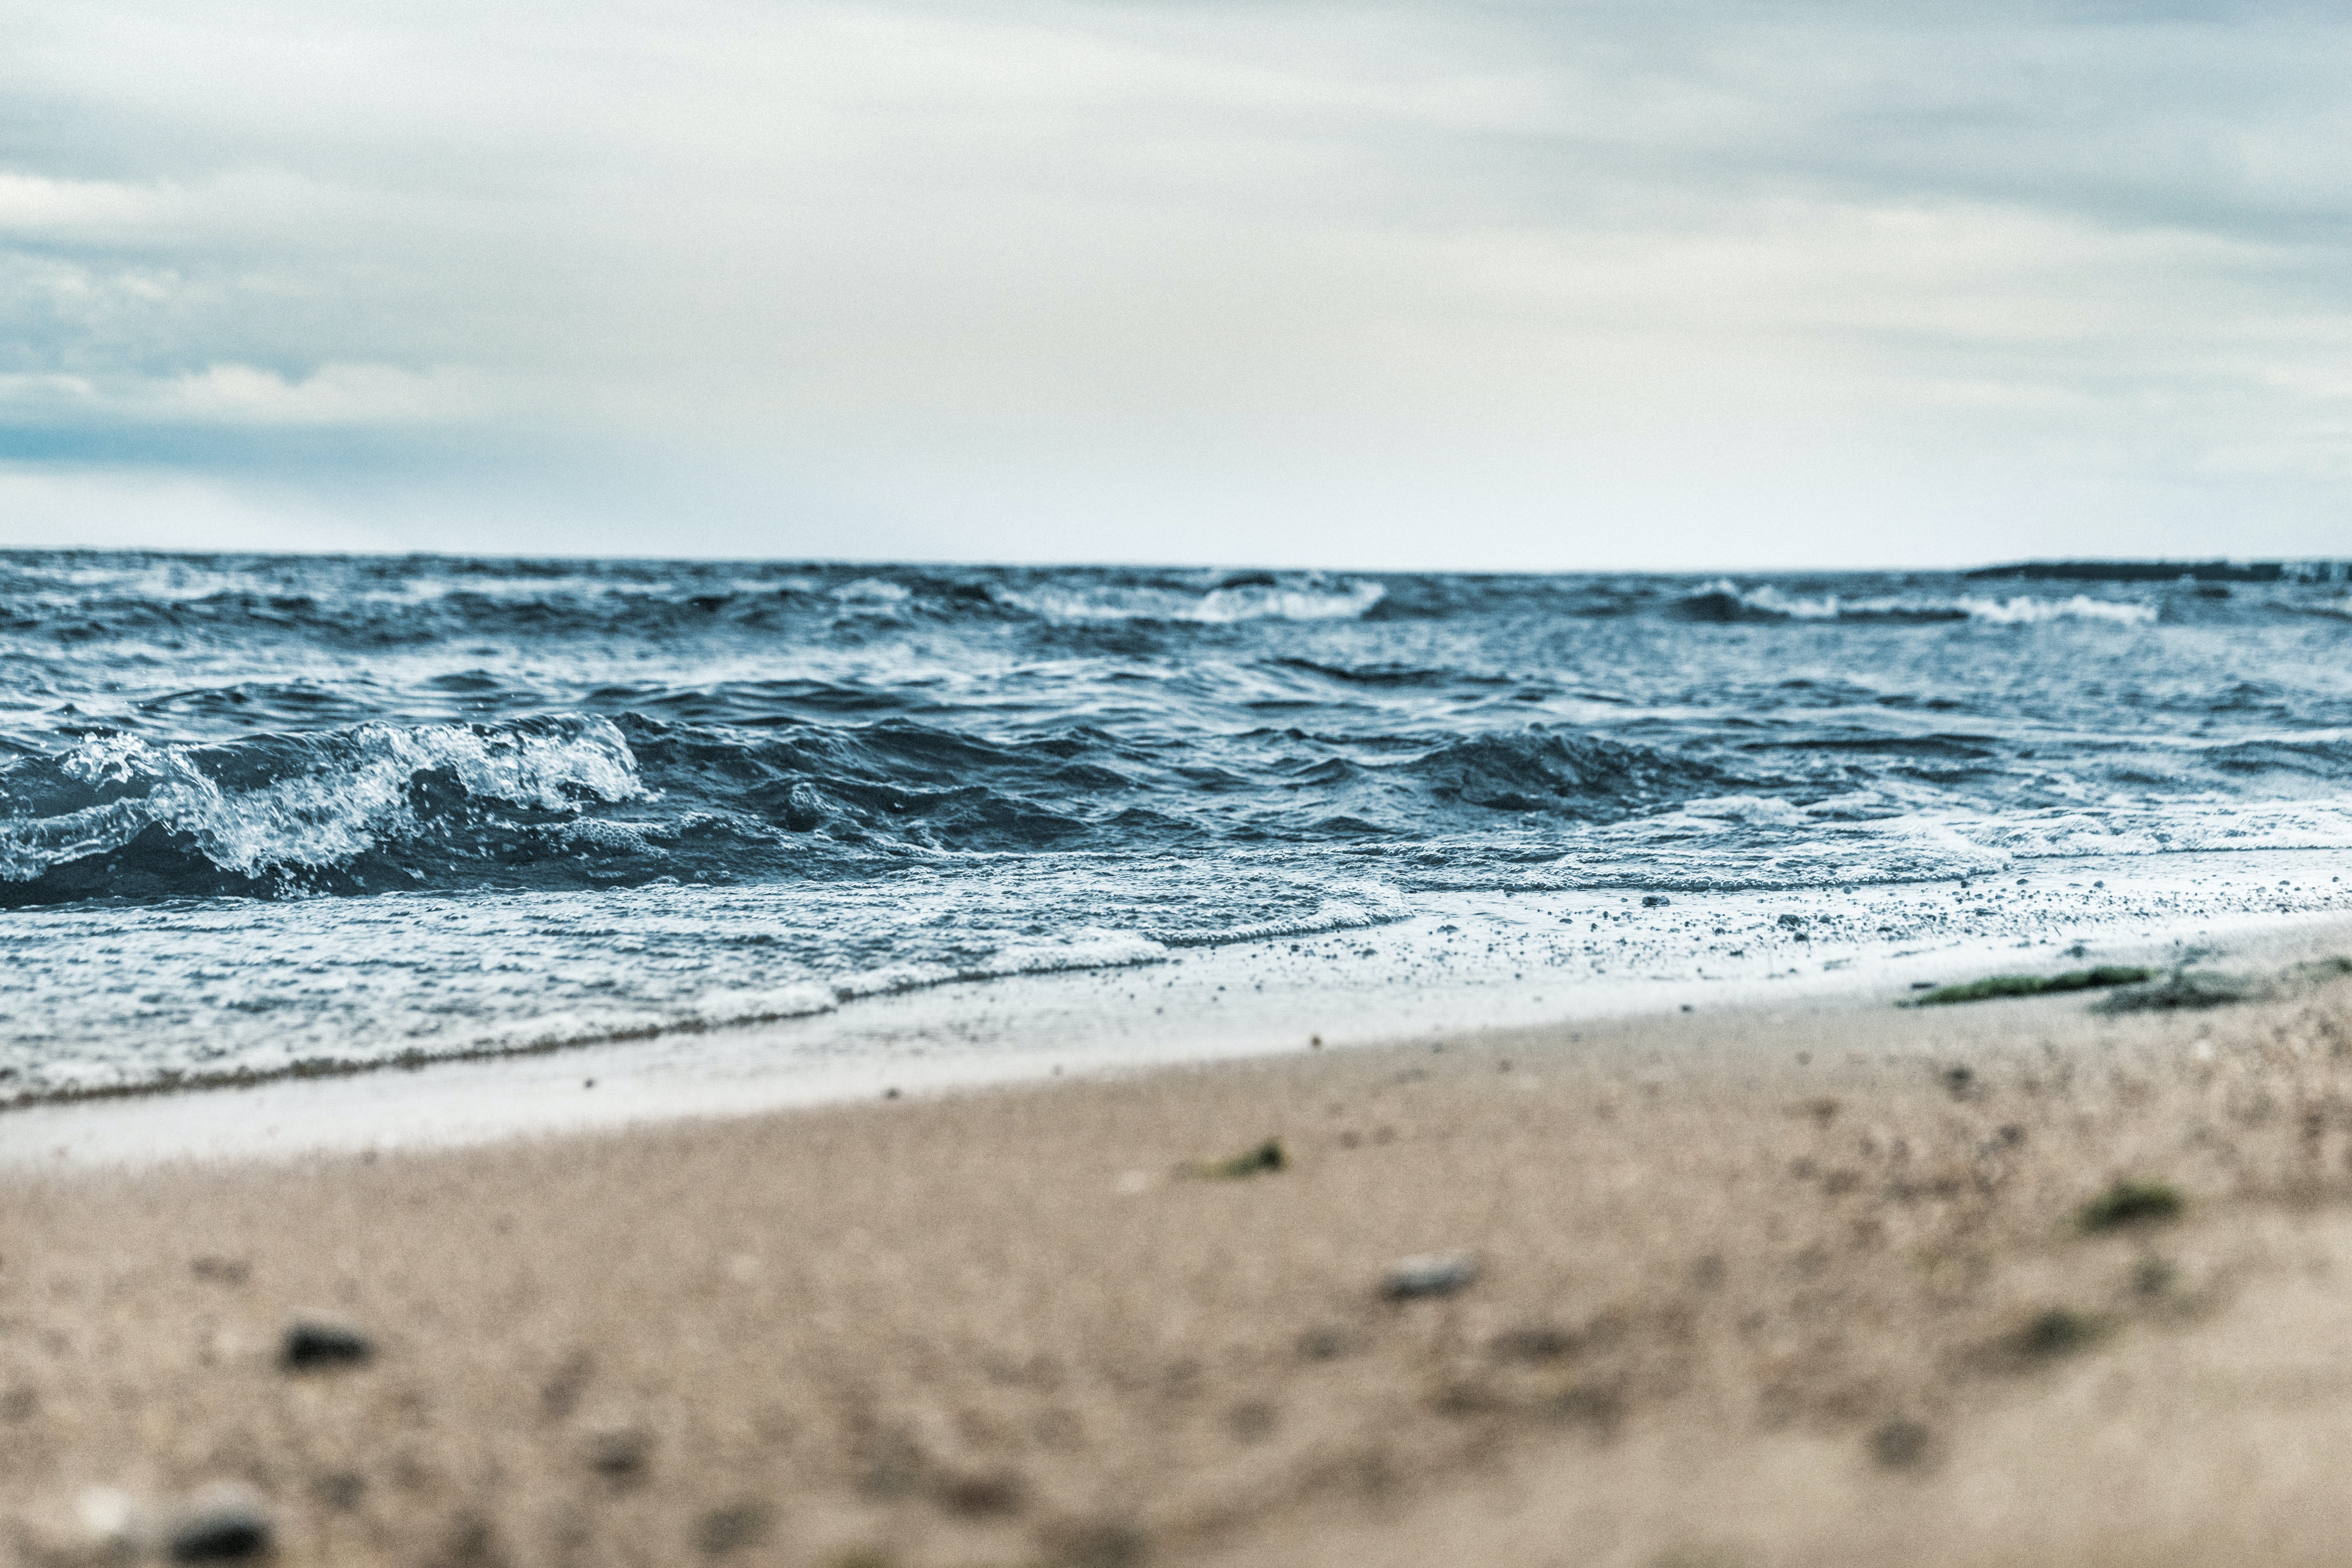 View of a rough sea from the beach in Kaliningrad